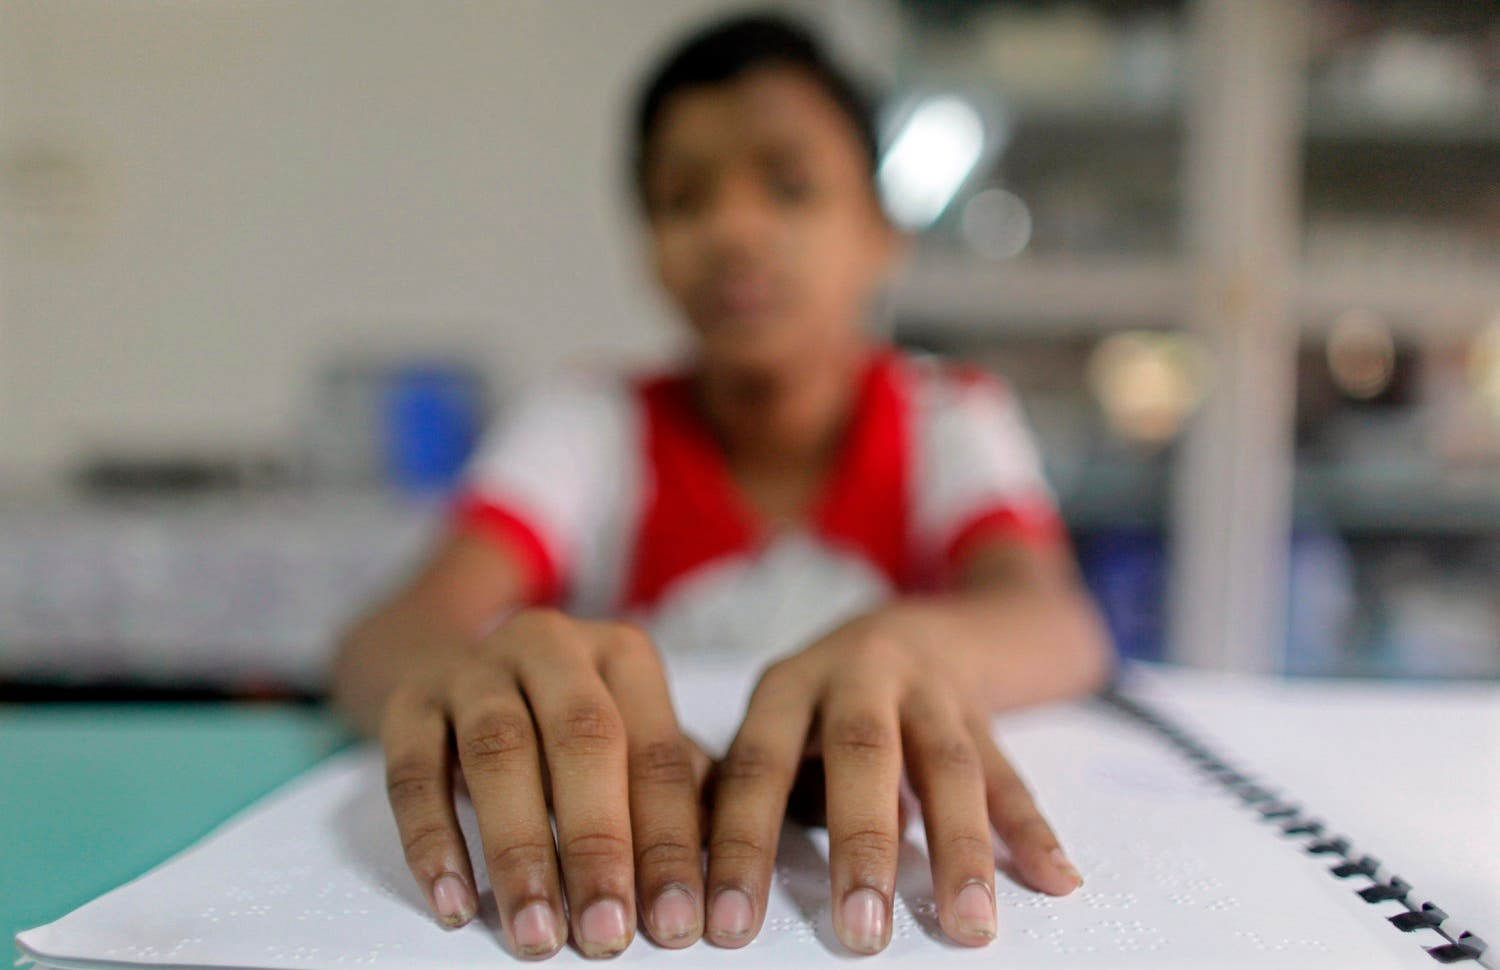 Currently, 815,000 people with disabilities get a monthly allowance from the government. (Reuters)